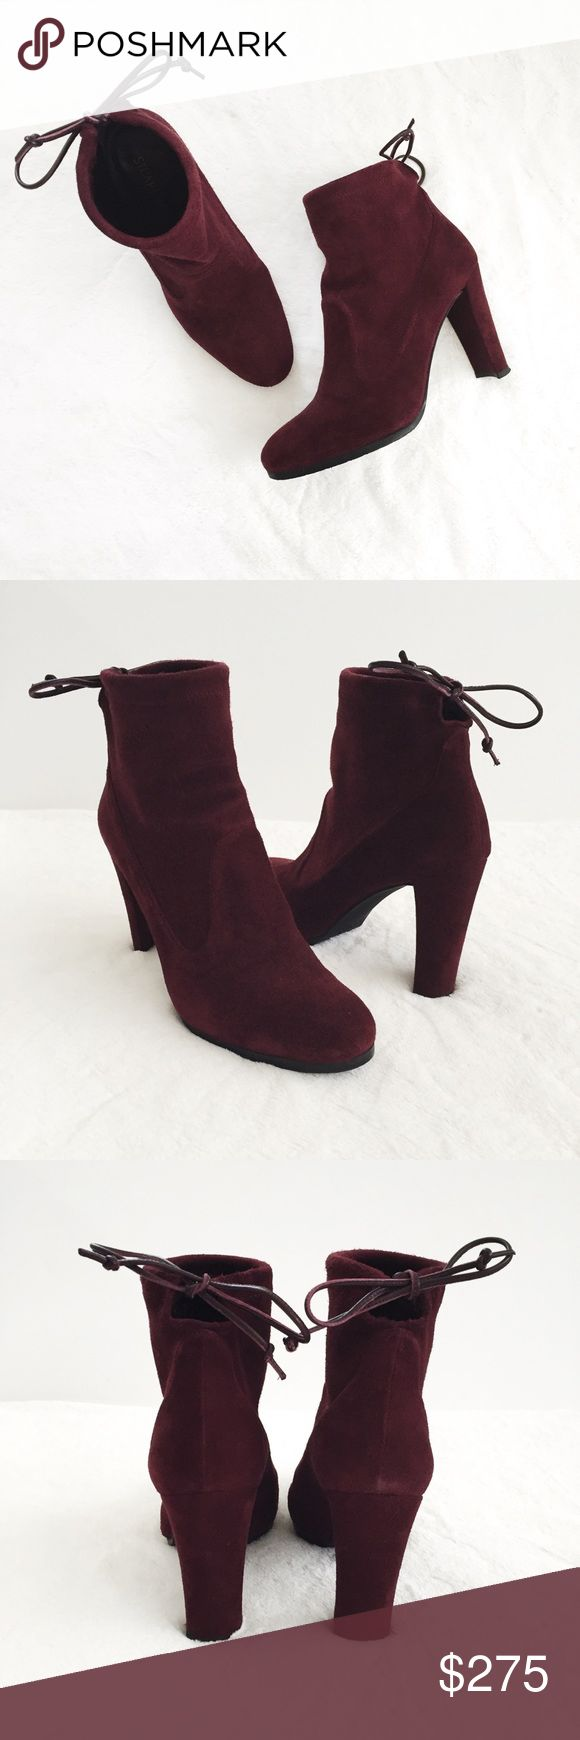 """Stuart Weizman """"Perfection"""" Suede Booties Purchased at the 2016 Nordstrom Semi-Annual Sale, these suede booties have only been worn a handful of times! The wine color (or """"Currant,"""" as it is officially named) is perfect for the upcoming fall season and will be a staple in your wardrobe. Like-new condition. Size 6 with a comfortable chunky 3.5"""" heel and comes with original box. Note: The last picture shows was taken in direct sunlight, so that's why the wine color is brighter and more red…"""